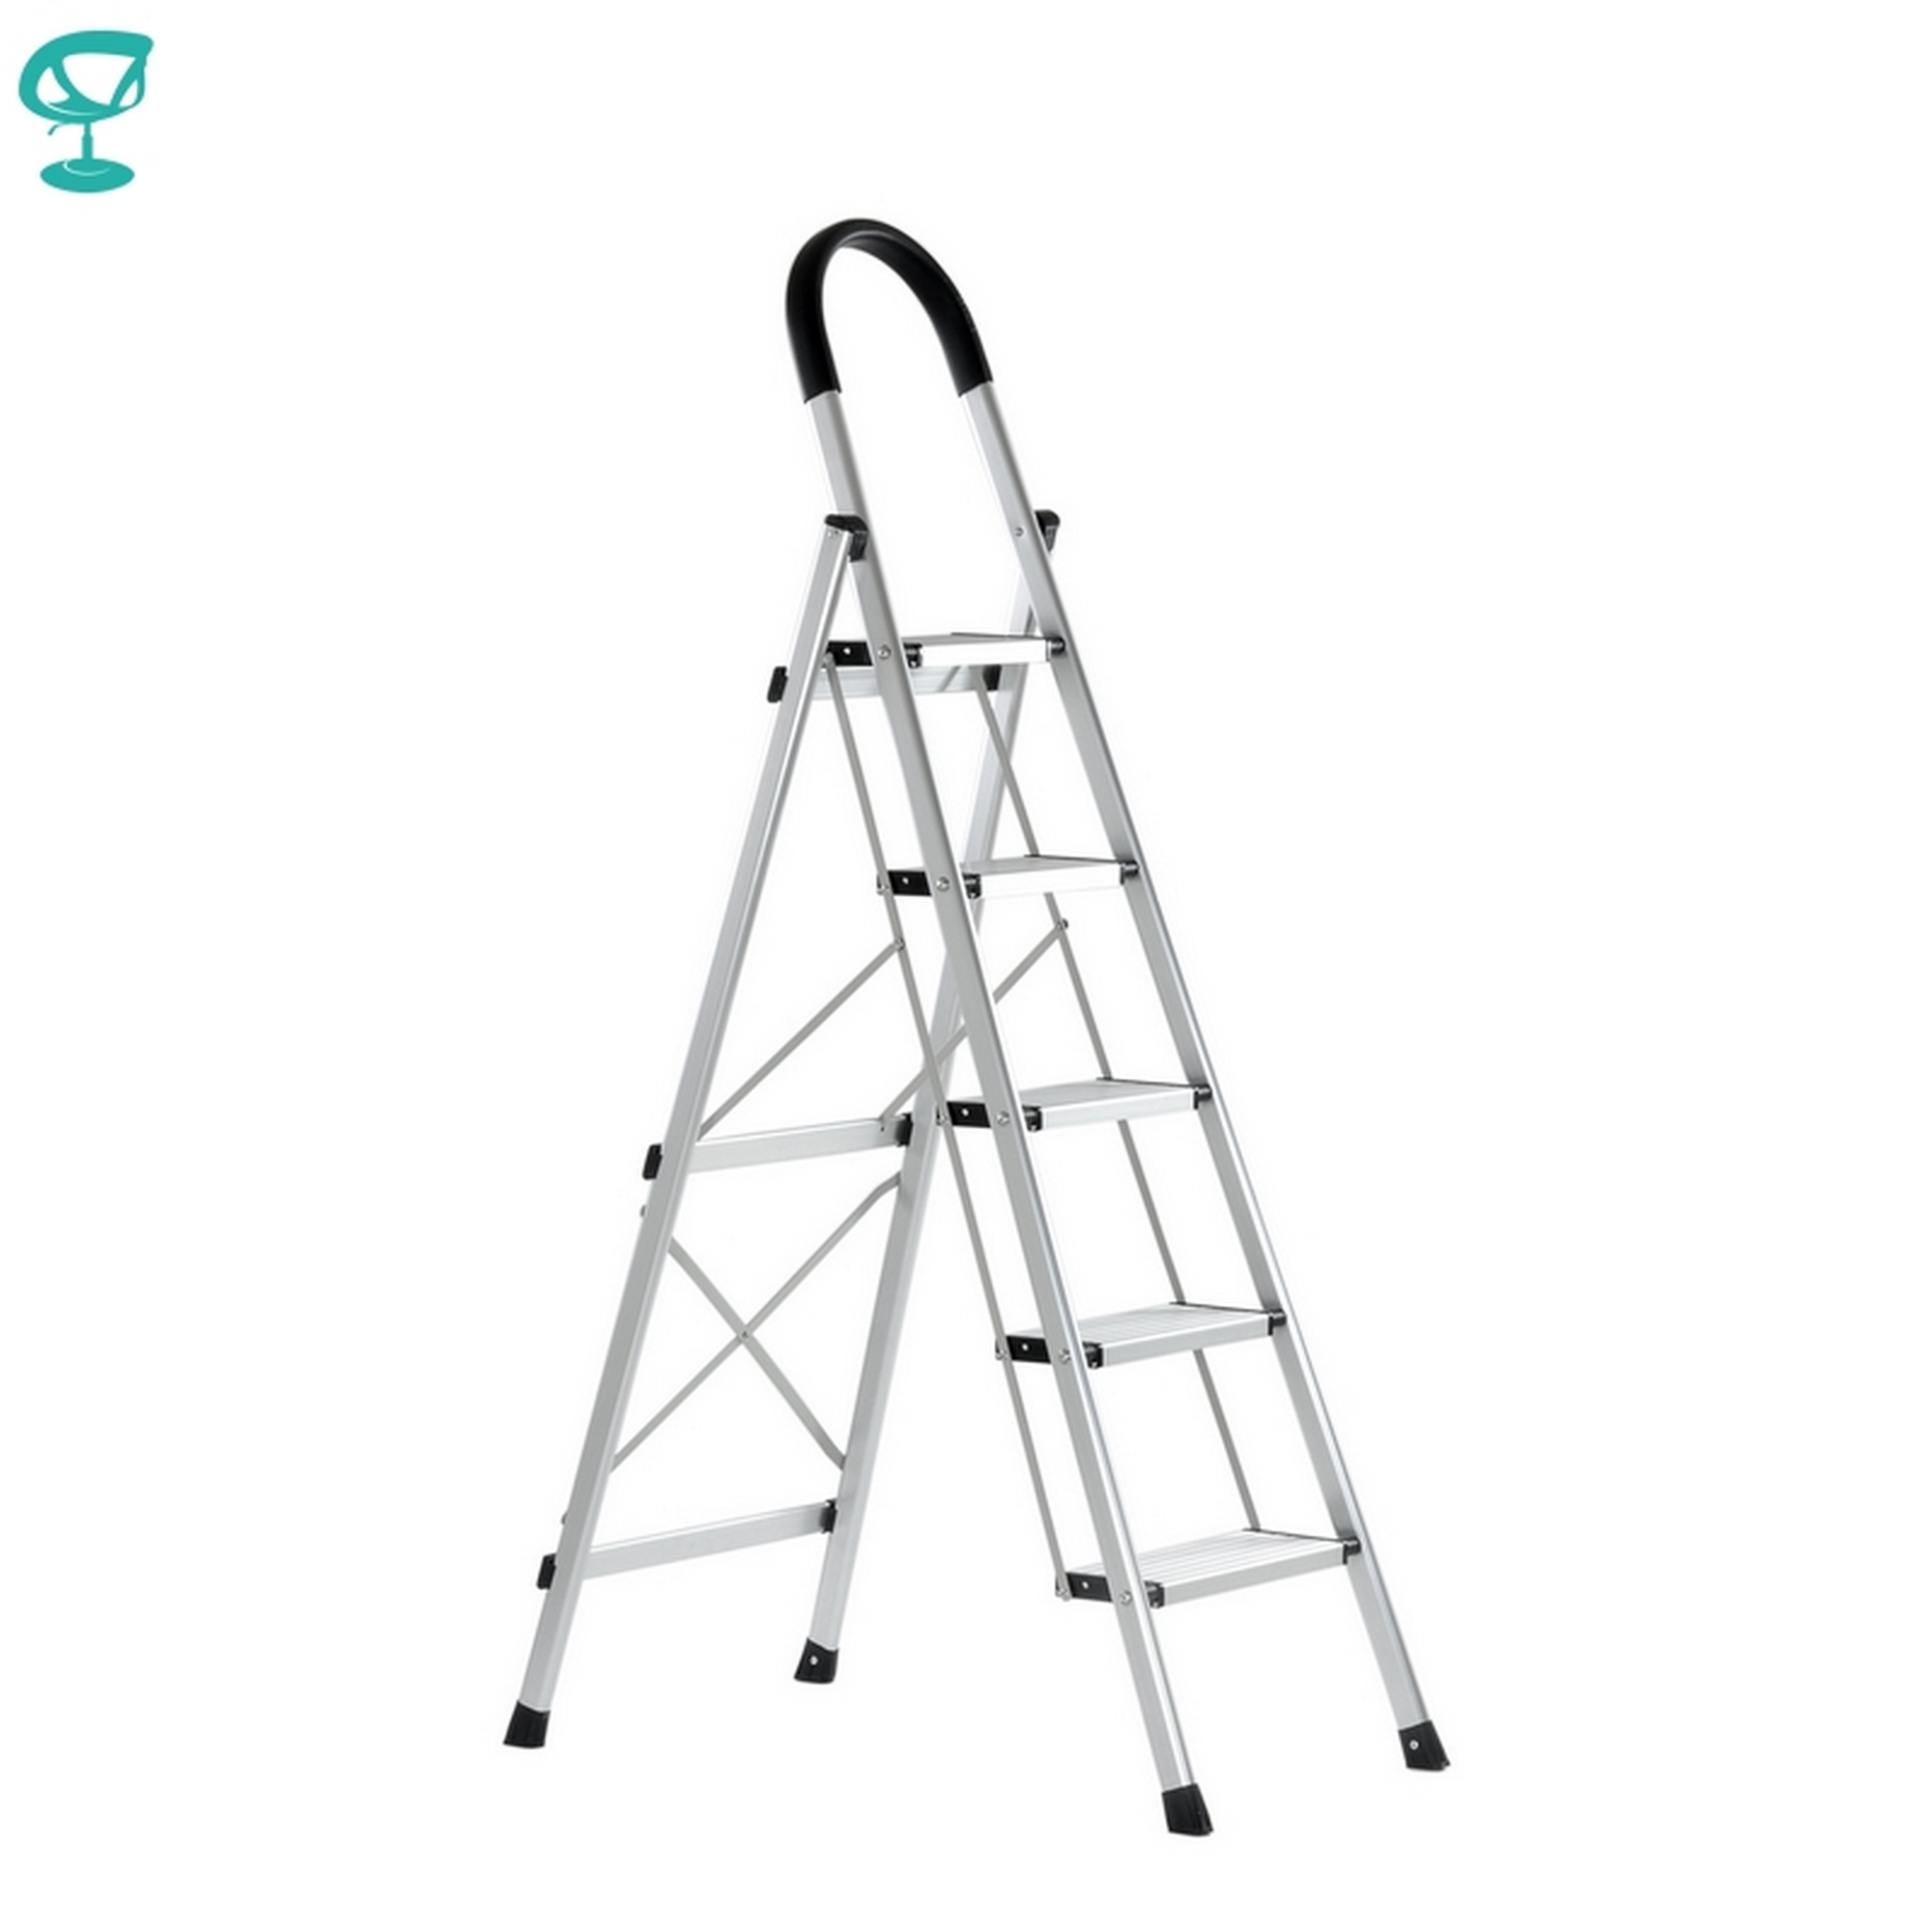 95676 Barneo ST-25 Ladder Aluminum 5 Stages Single Side Max Load 150 Kg Free Shipping To Russia